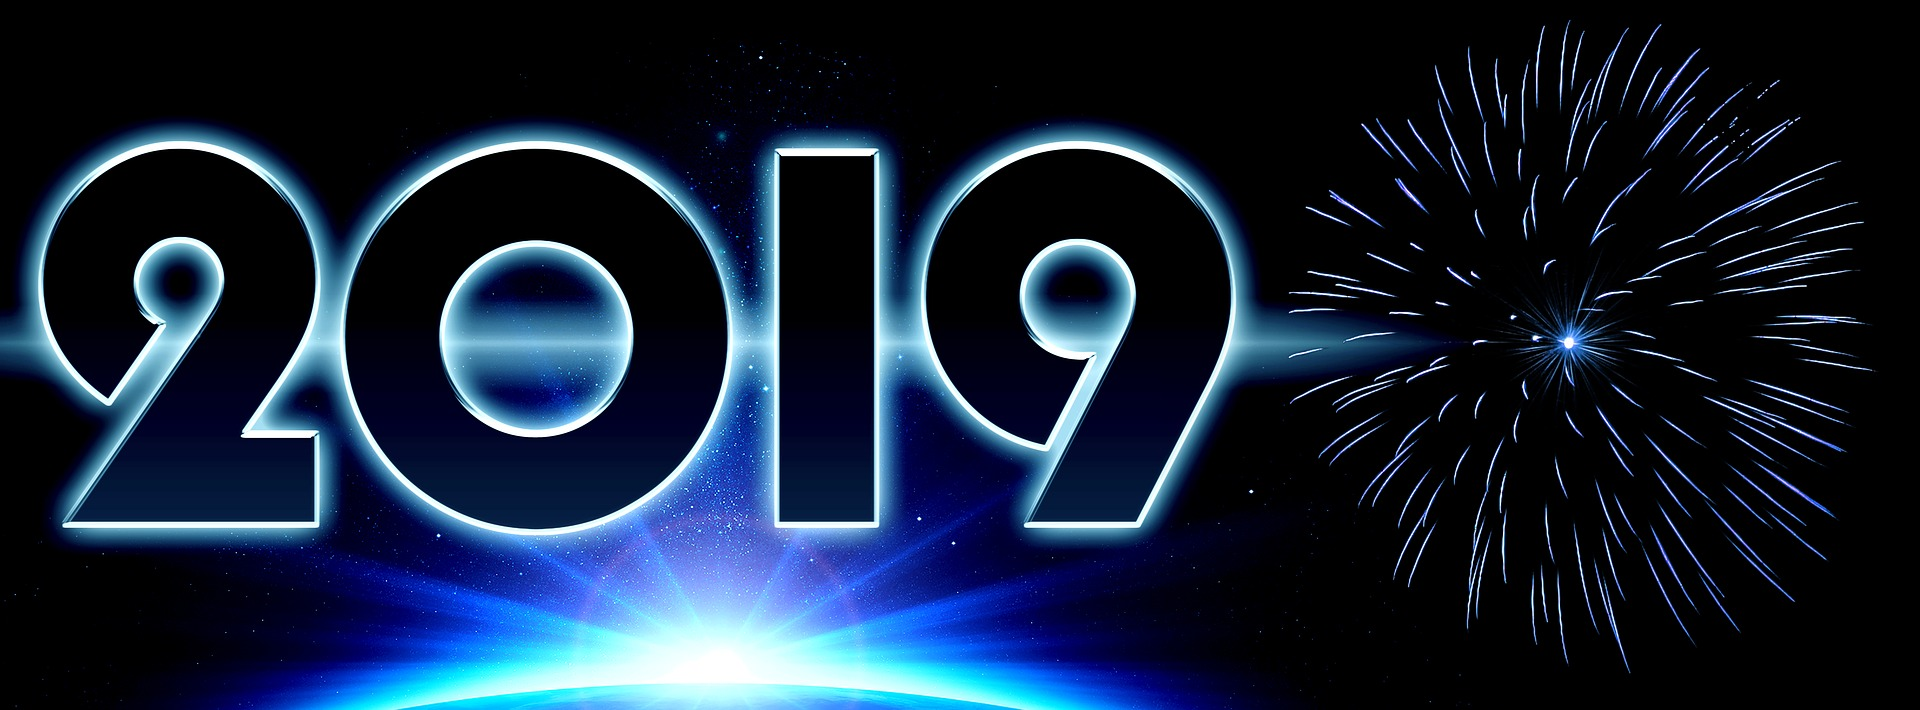 Featuring the year 2019